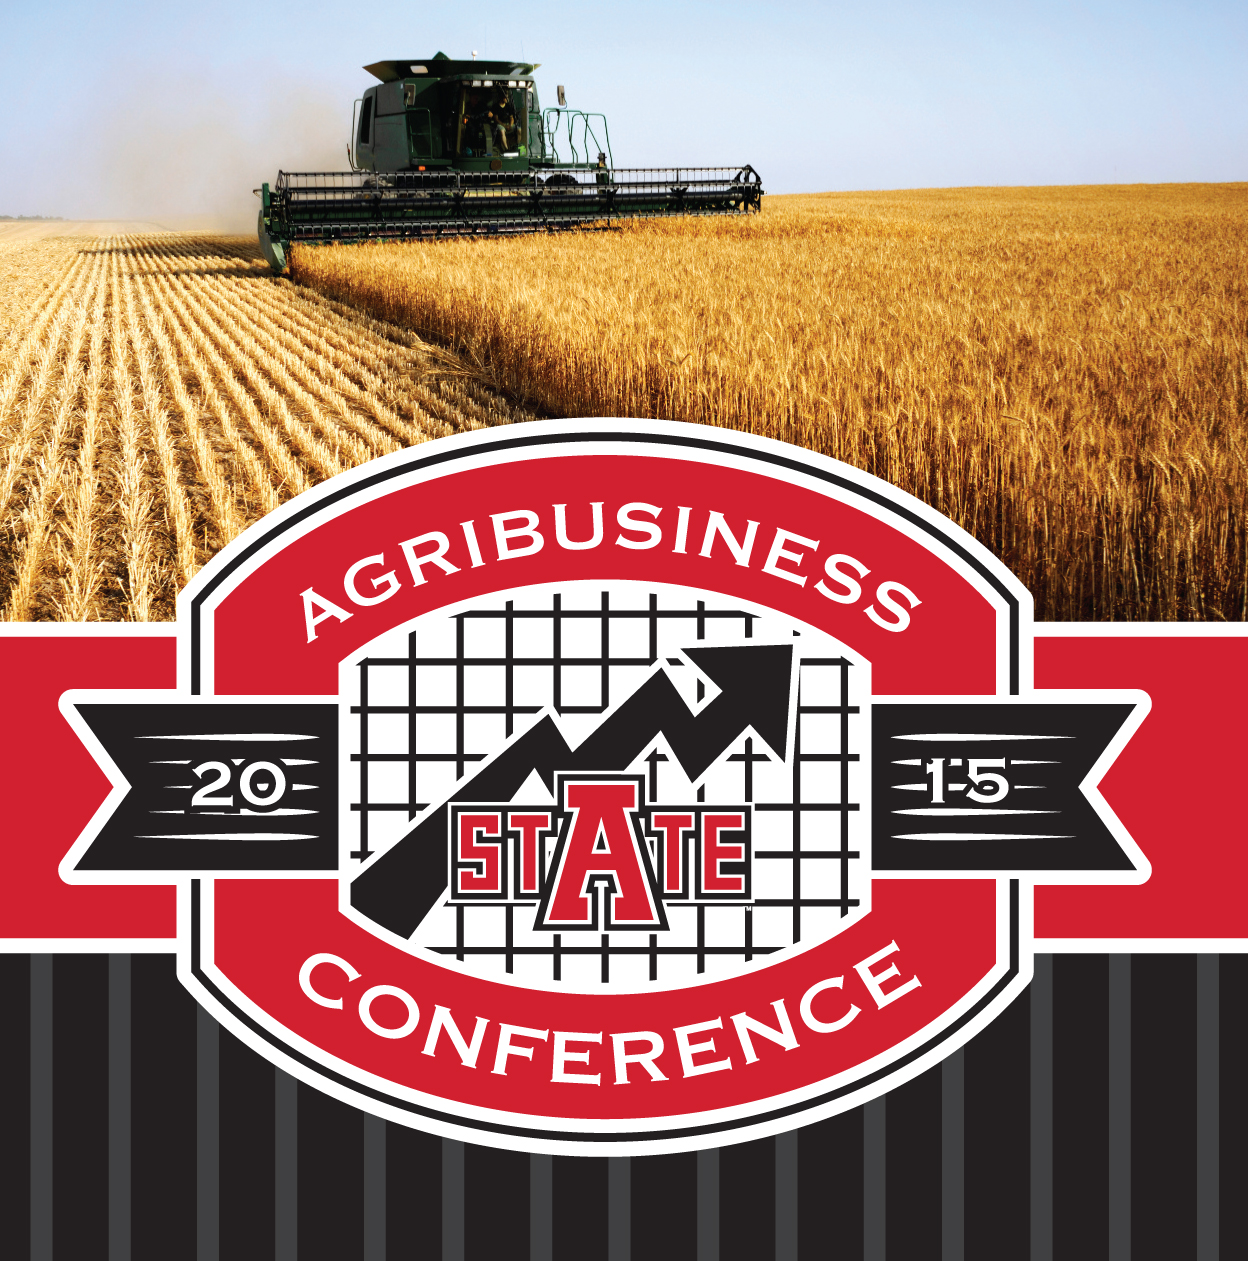 Agribusiness Conference logo